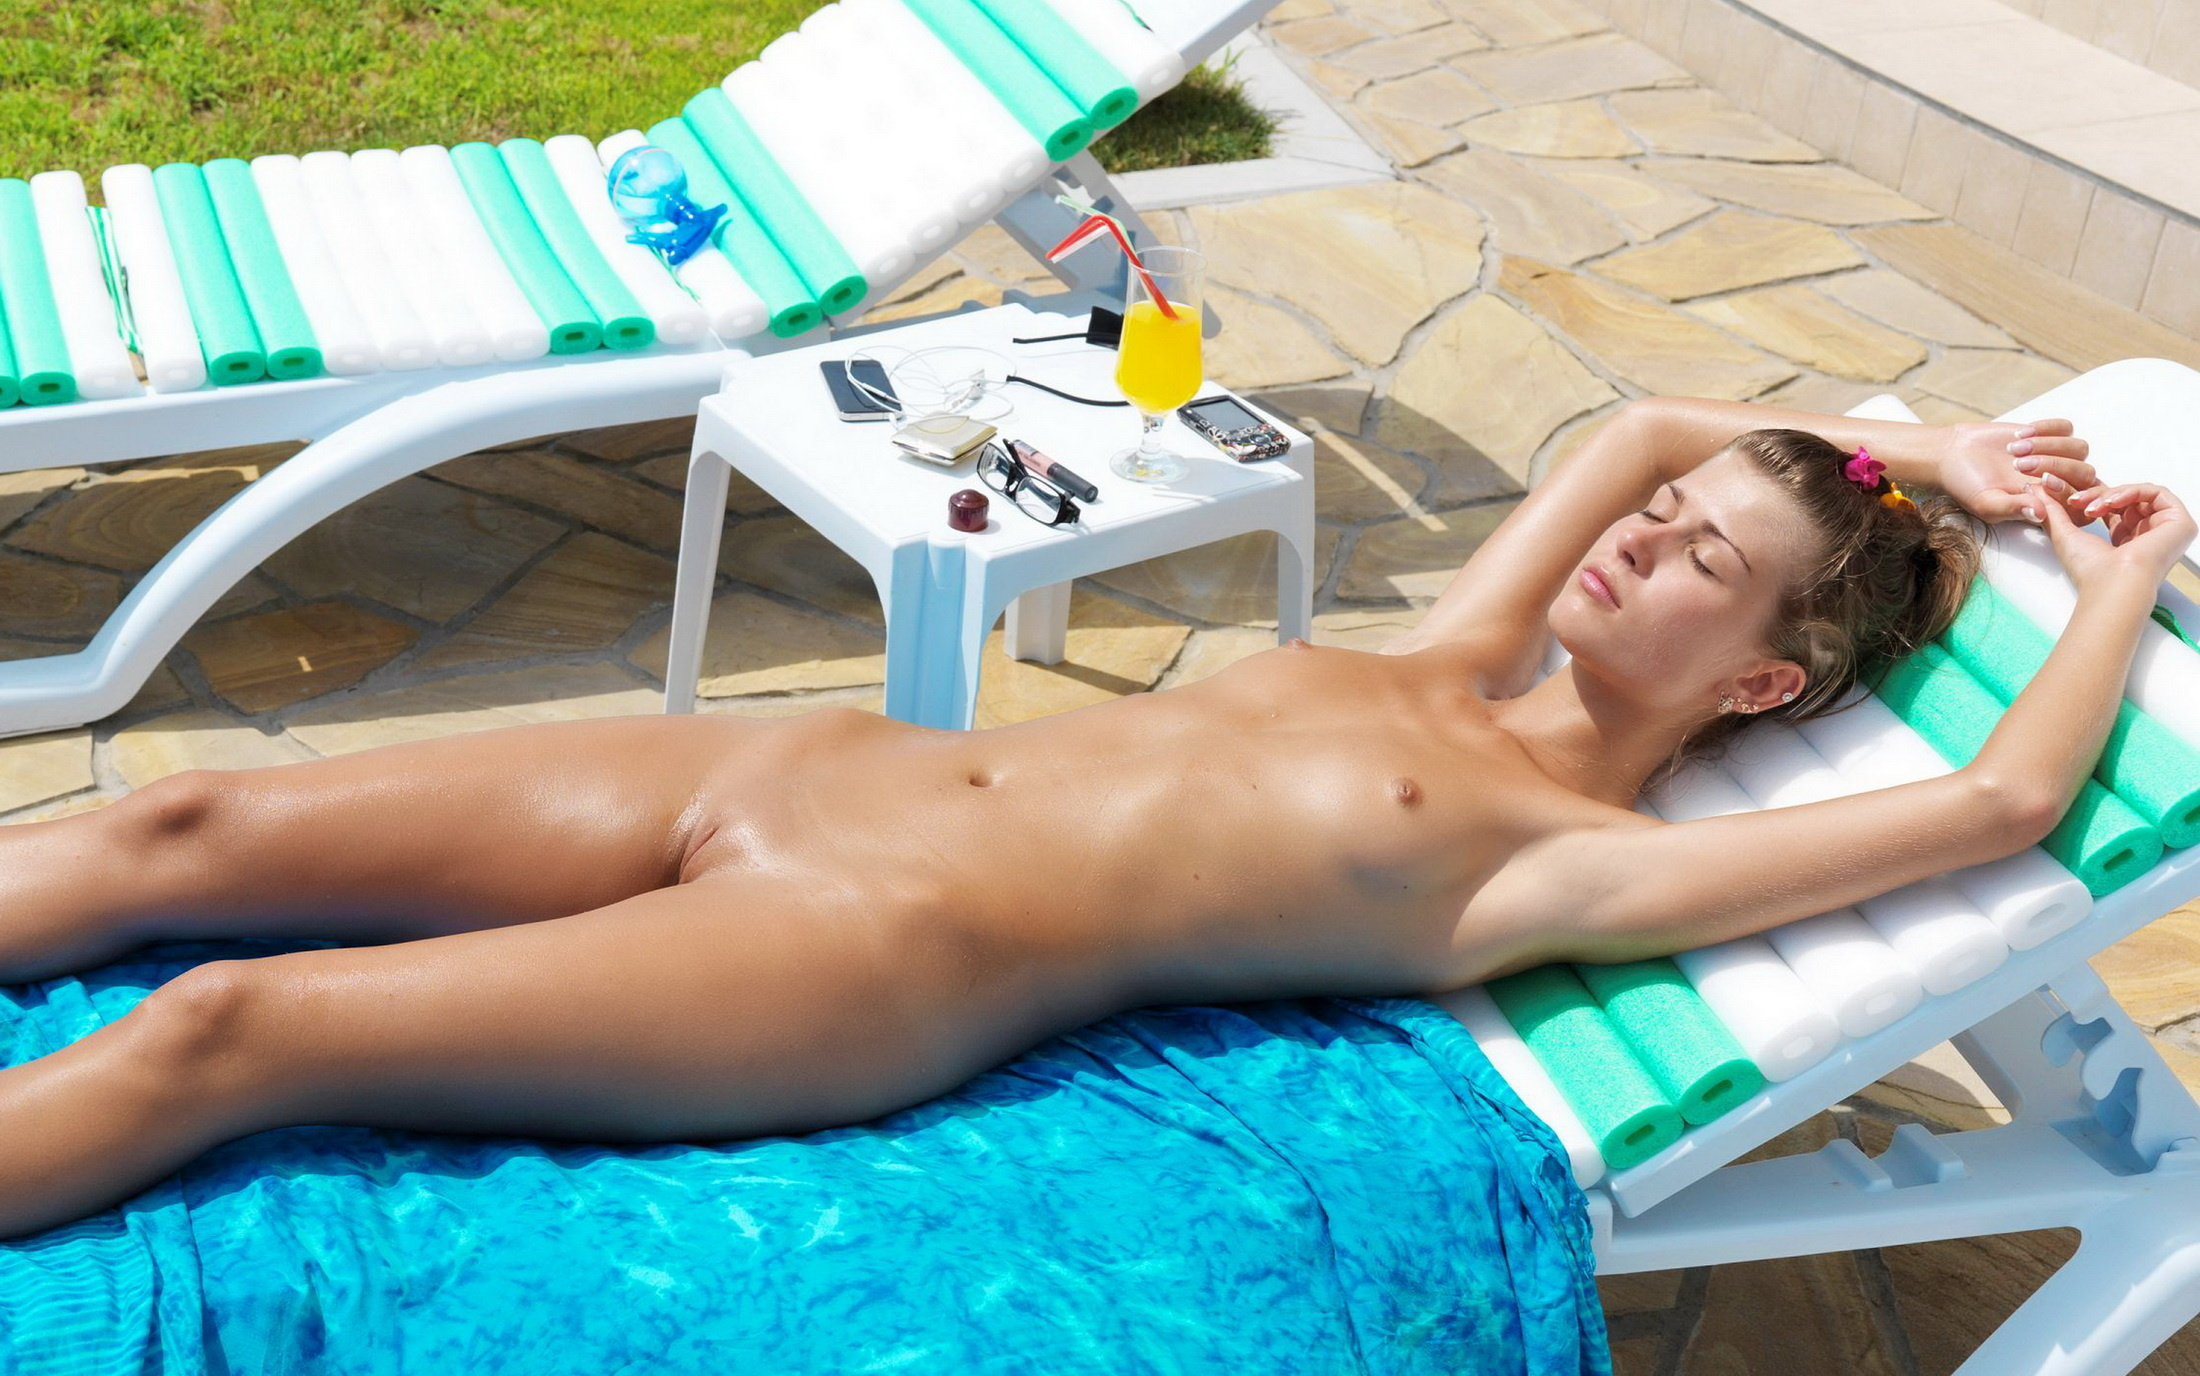 Nude at beach up oiling